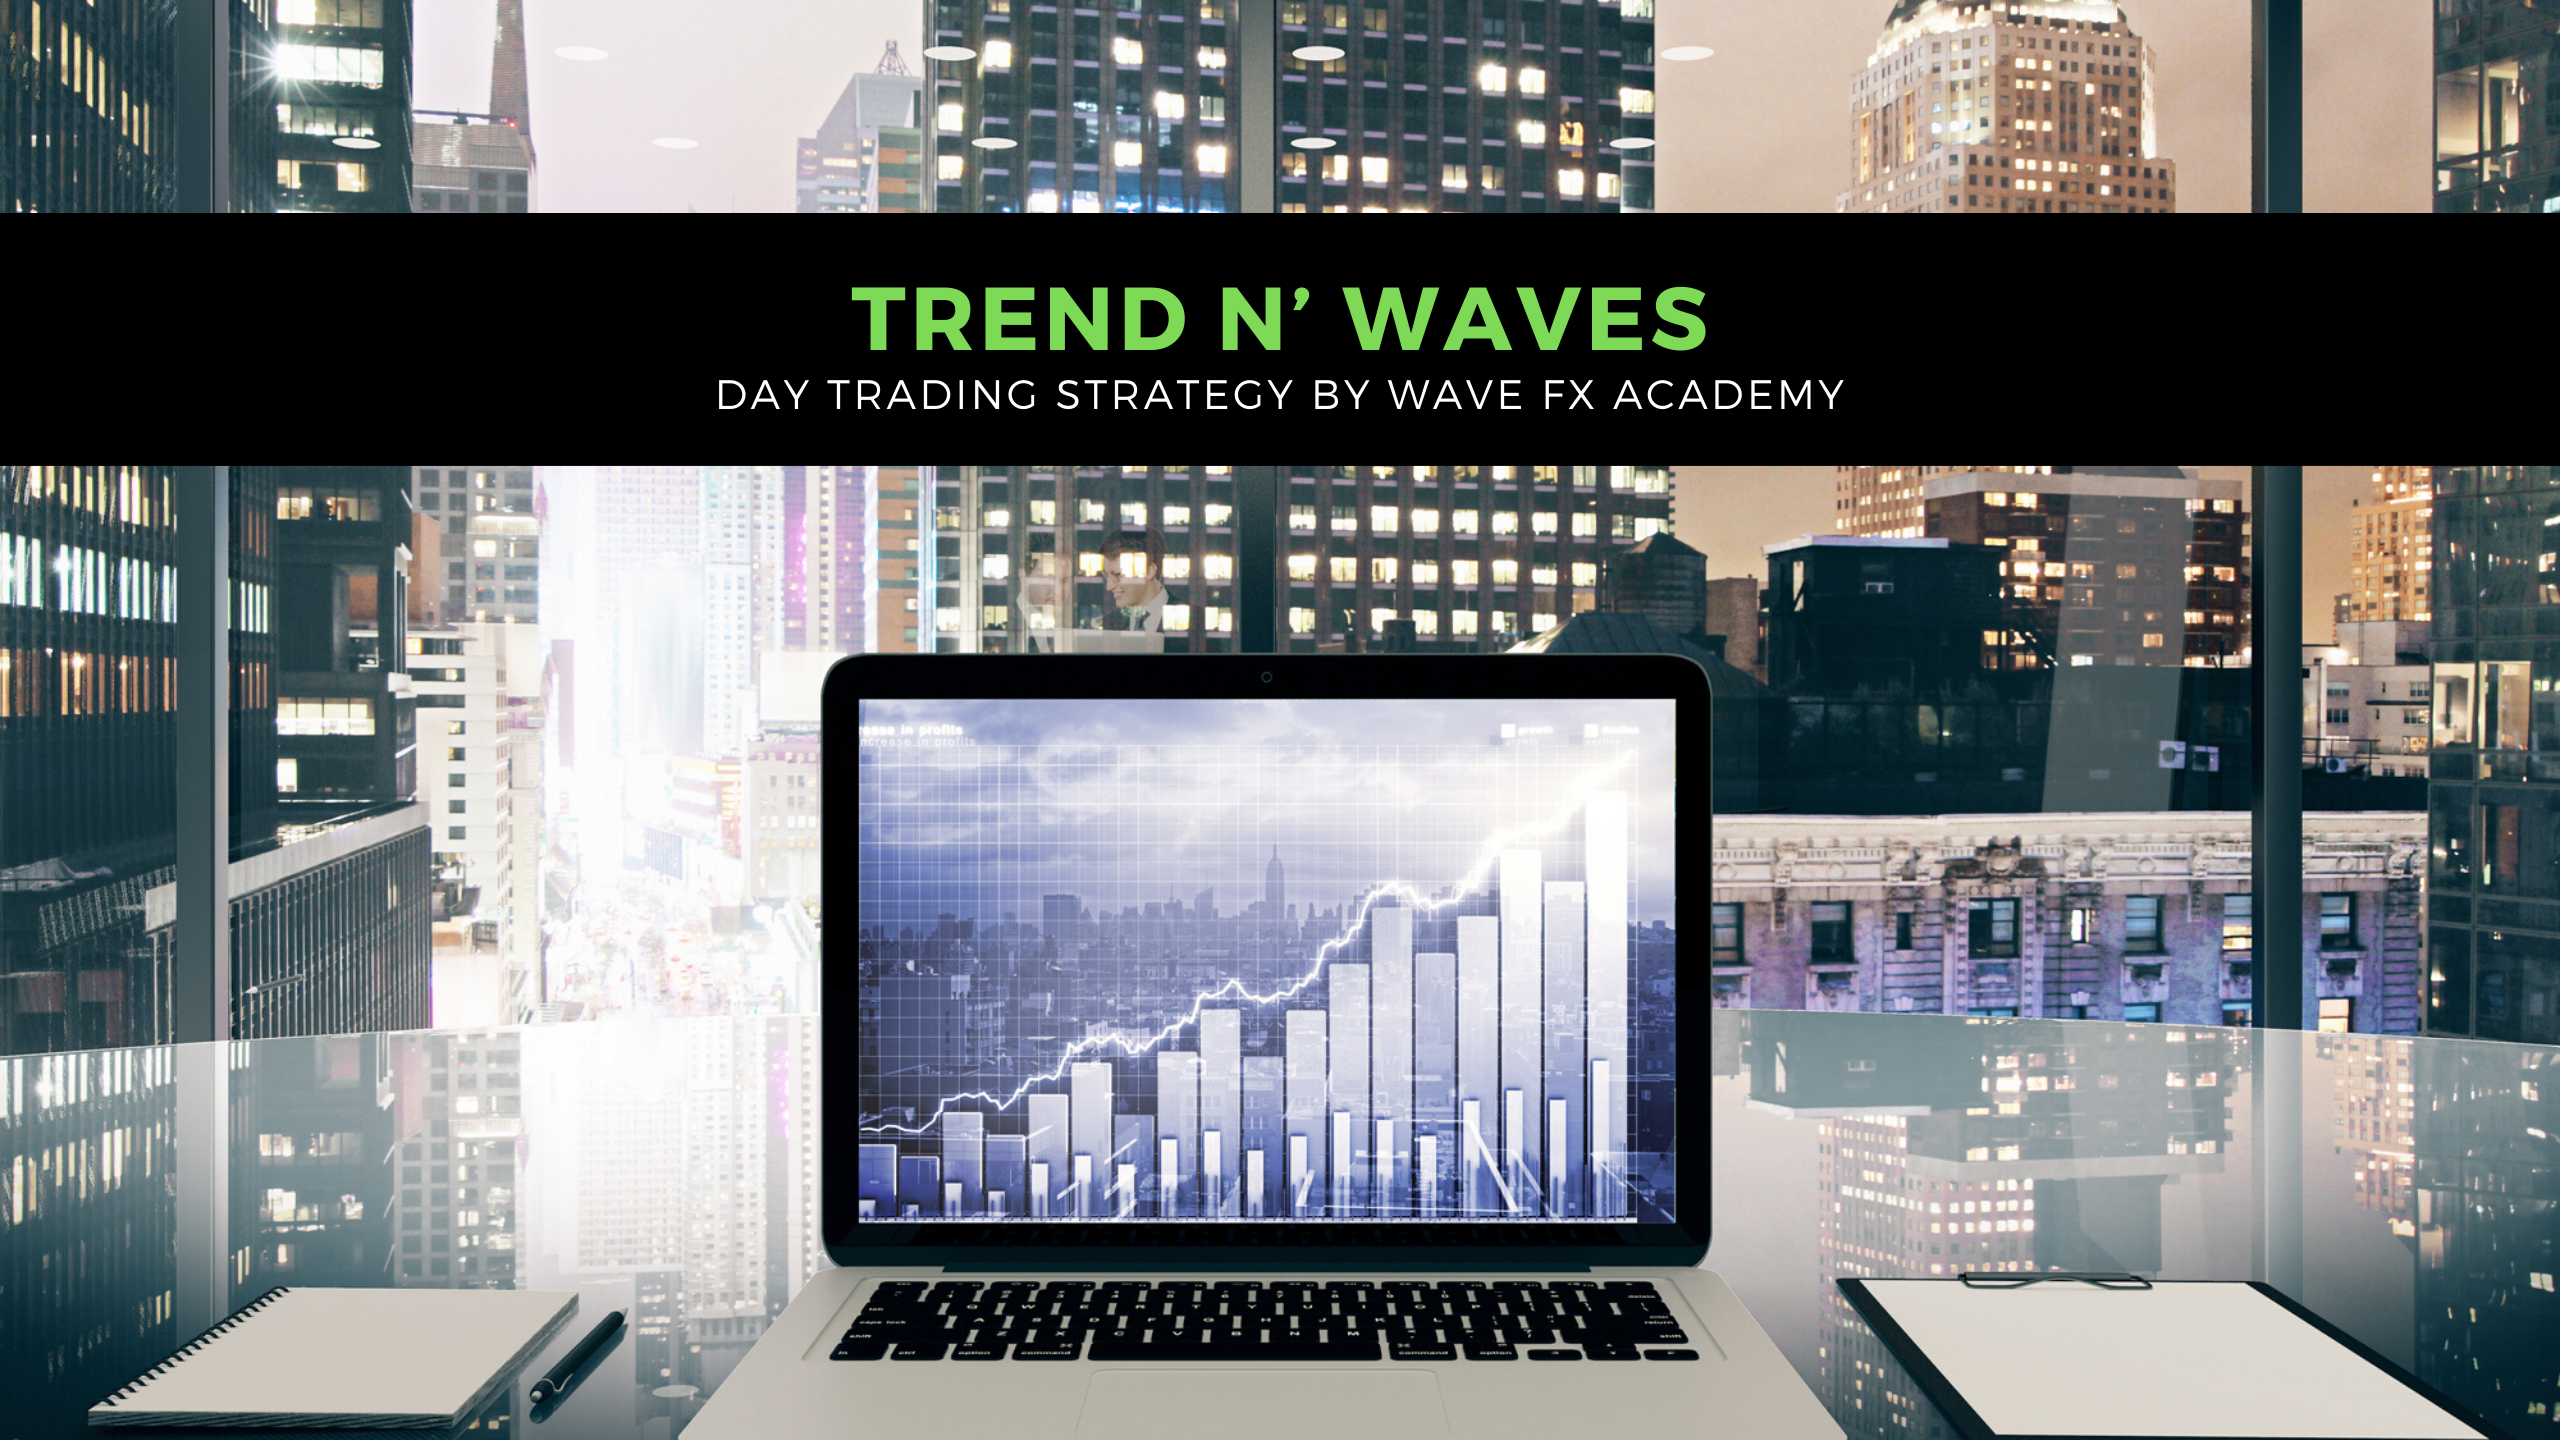 Trend N' Waves Day Trading Strategy